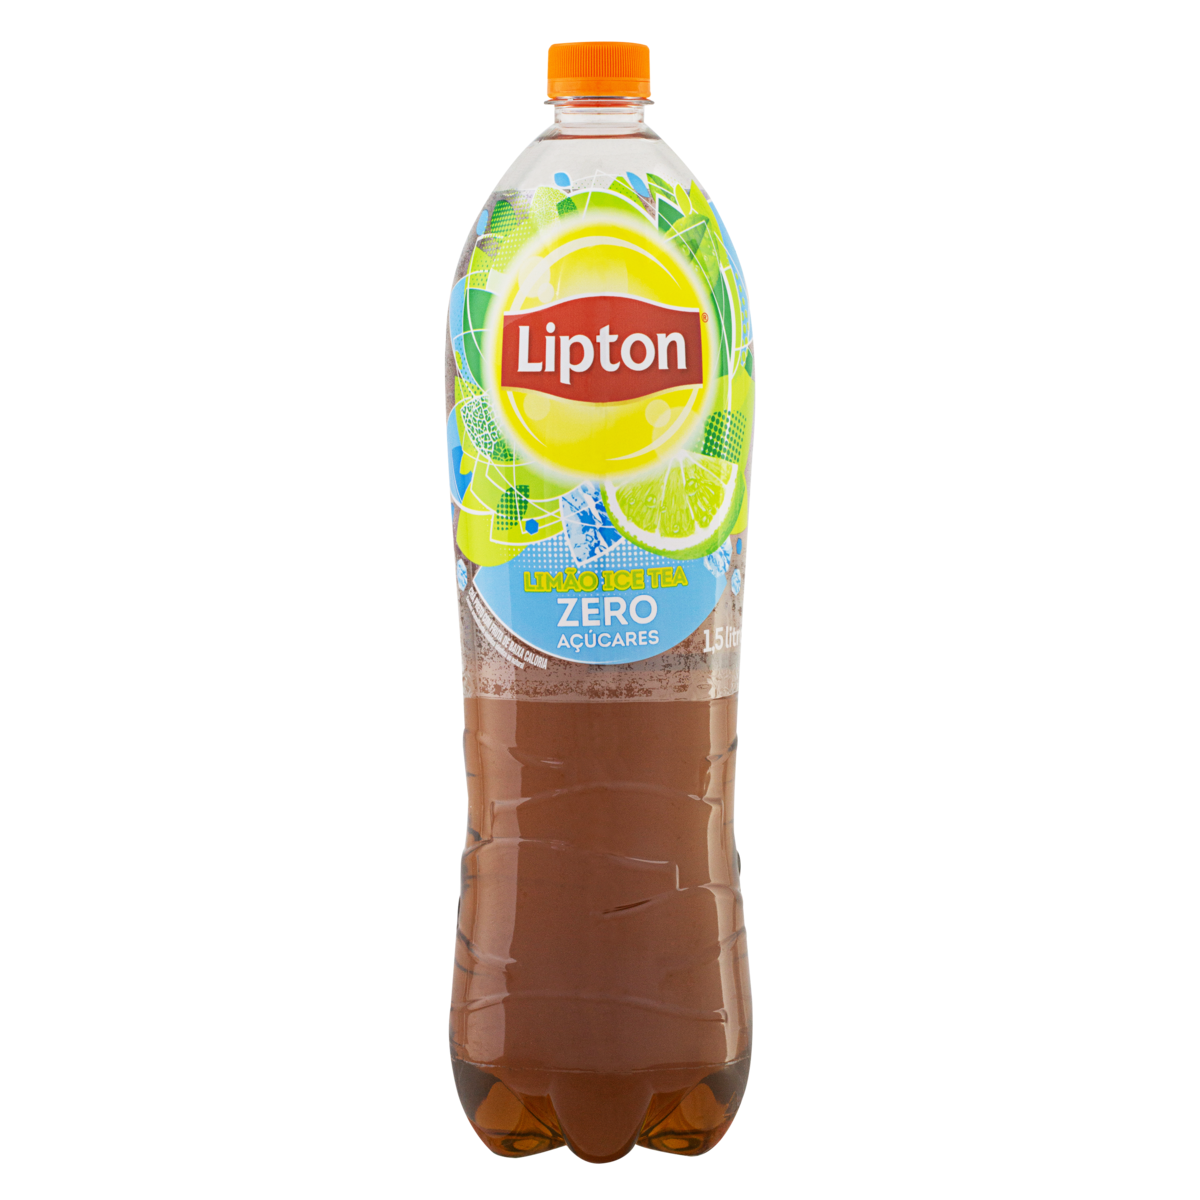 7891042103278 - CHÁ PRONTO COM LIMÃO LIPTON ICE TEA LIGHT 15 LITRO